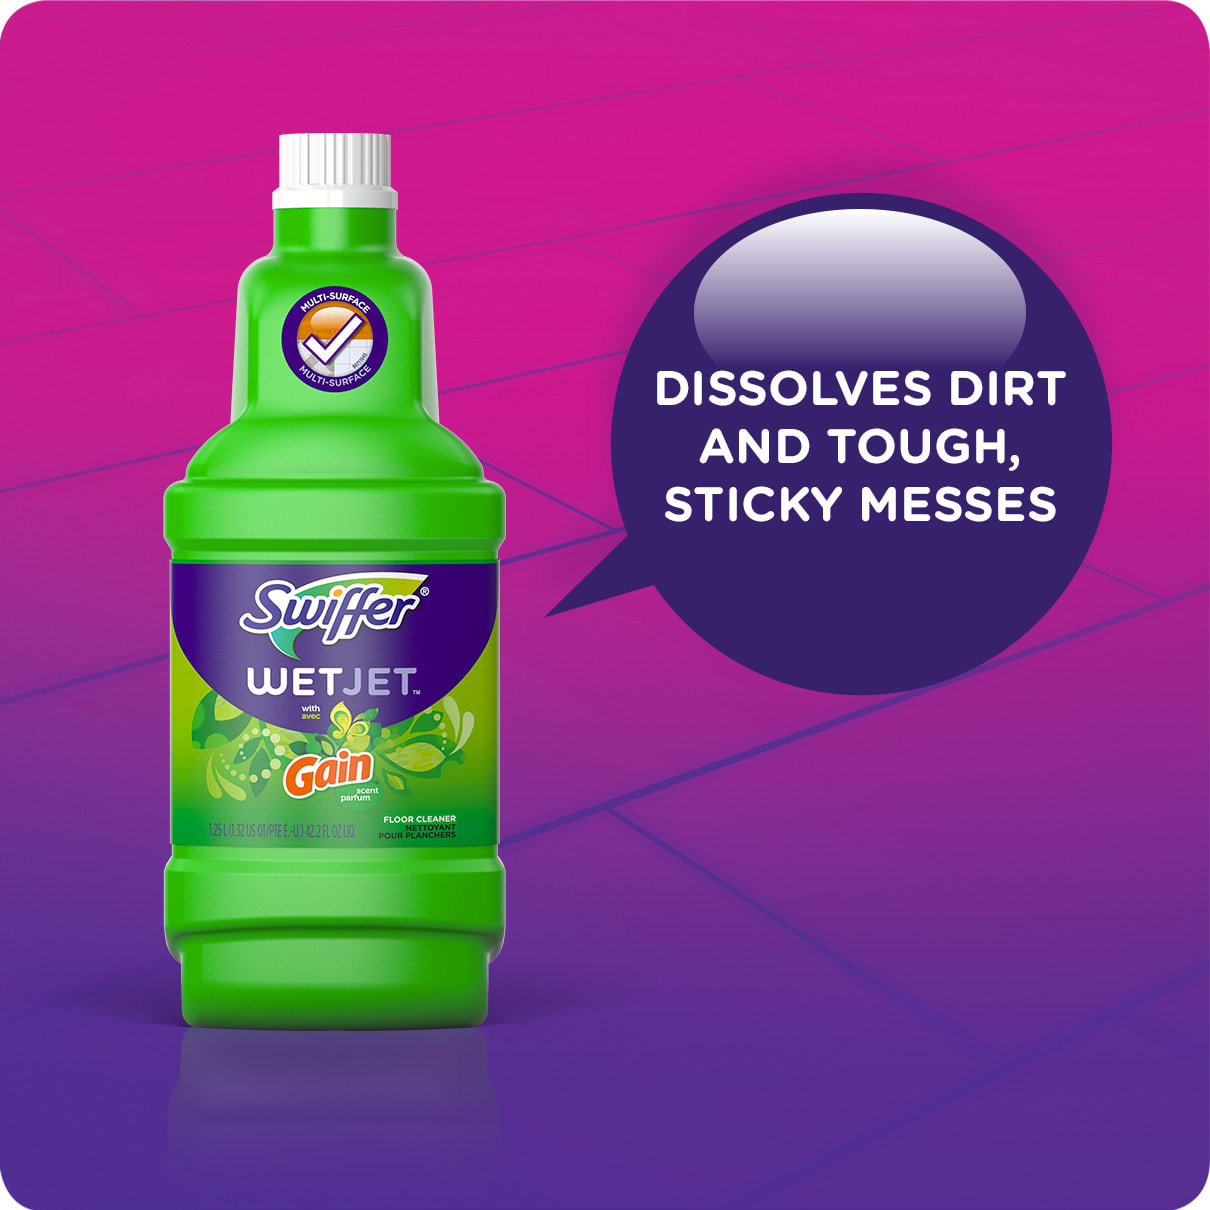 Swiffer WetJet Solution Refills Gain Dissolves Dirt and Sticky Messes